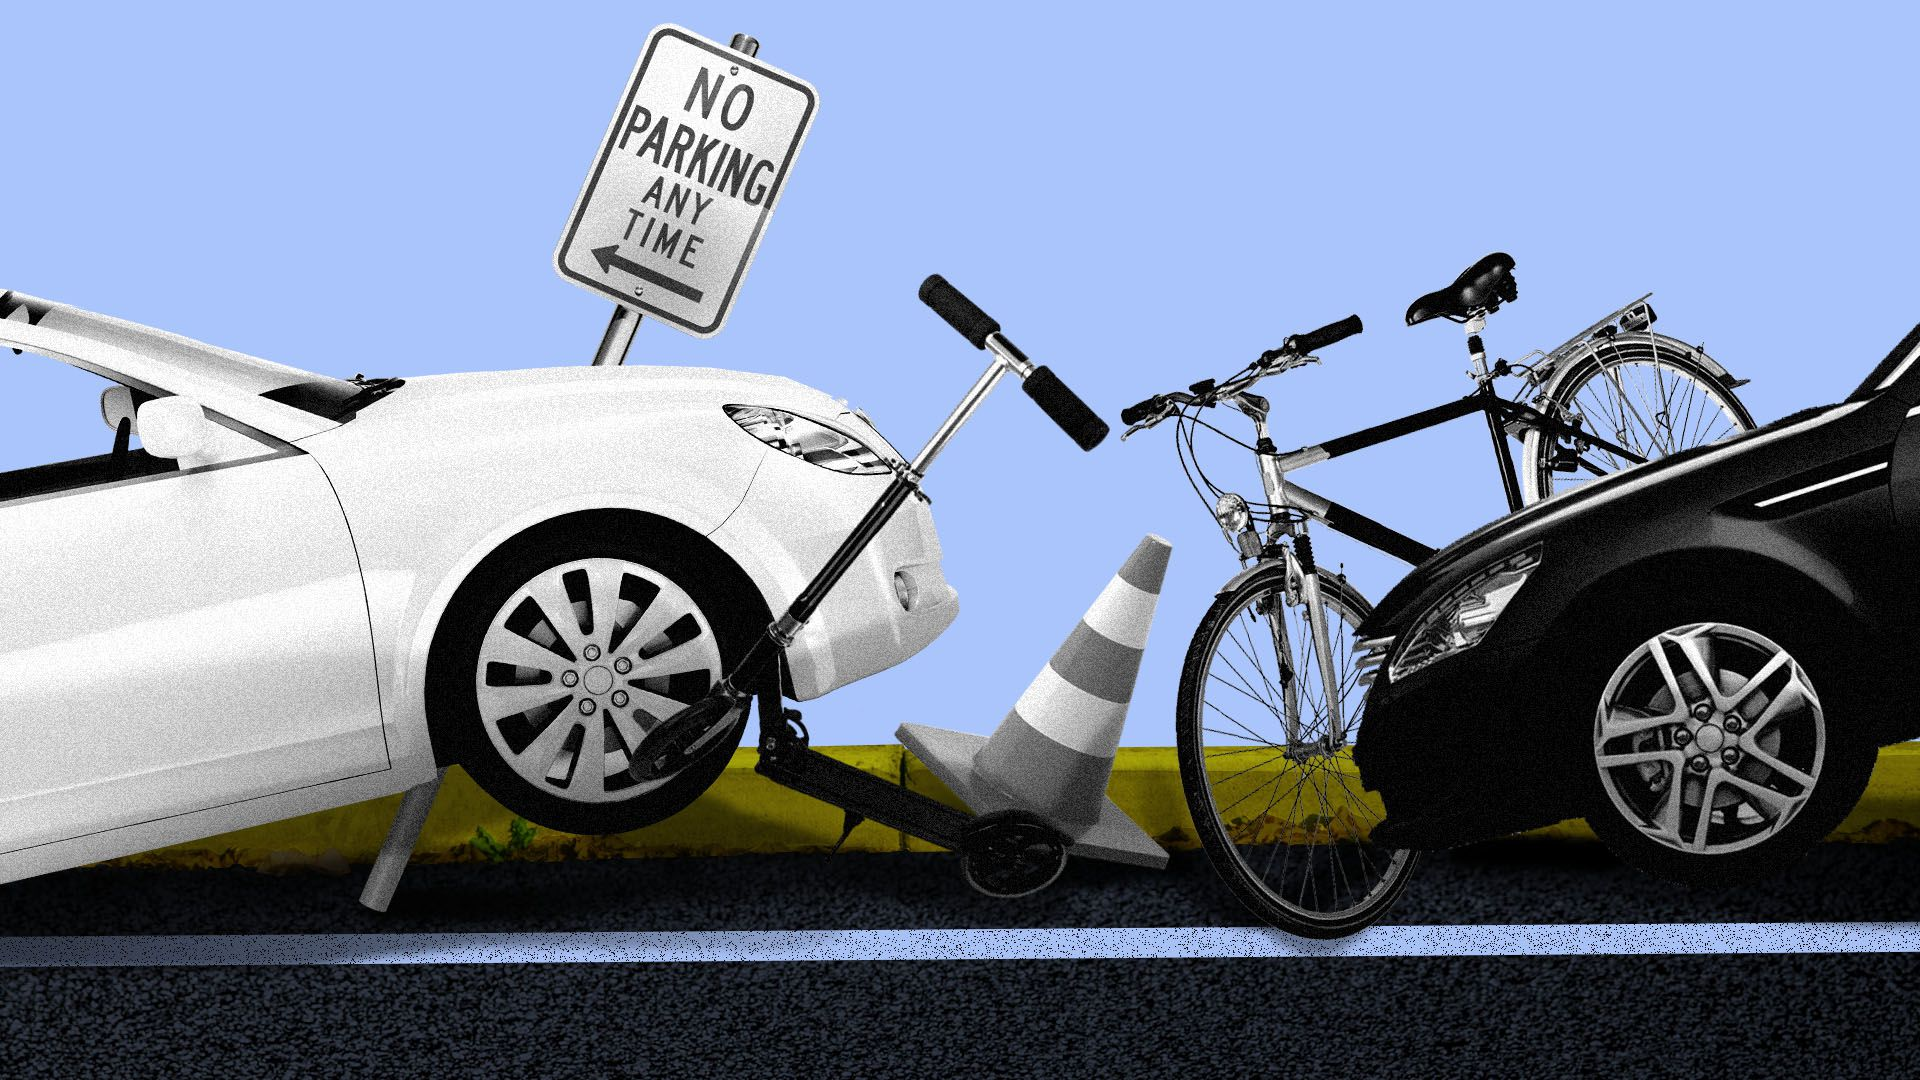 Illustration of a curb congested with cars, a bike, a scooter, a traffic cone, and a no parking sign